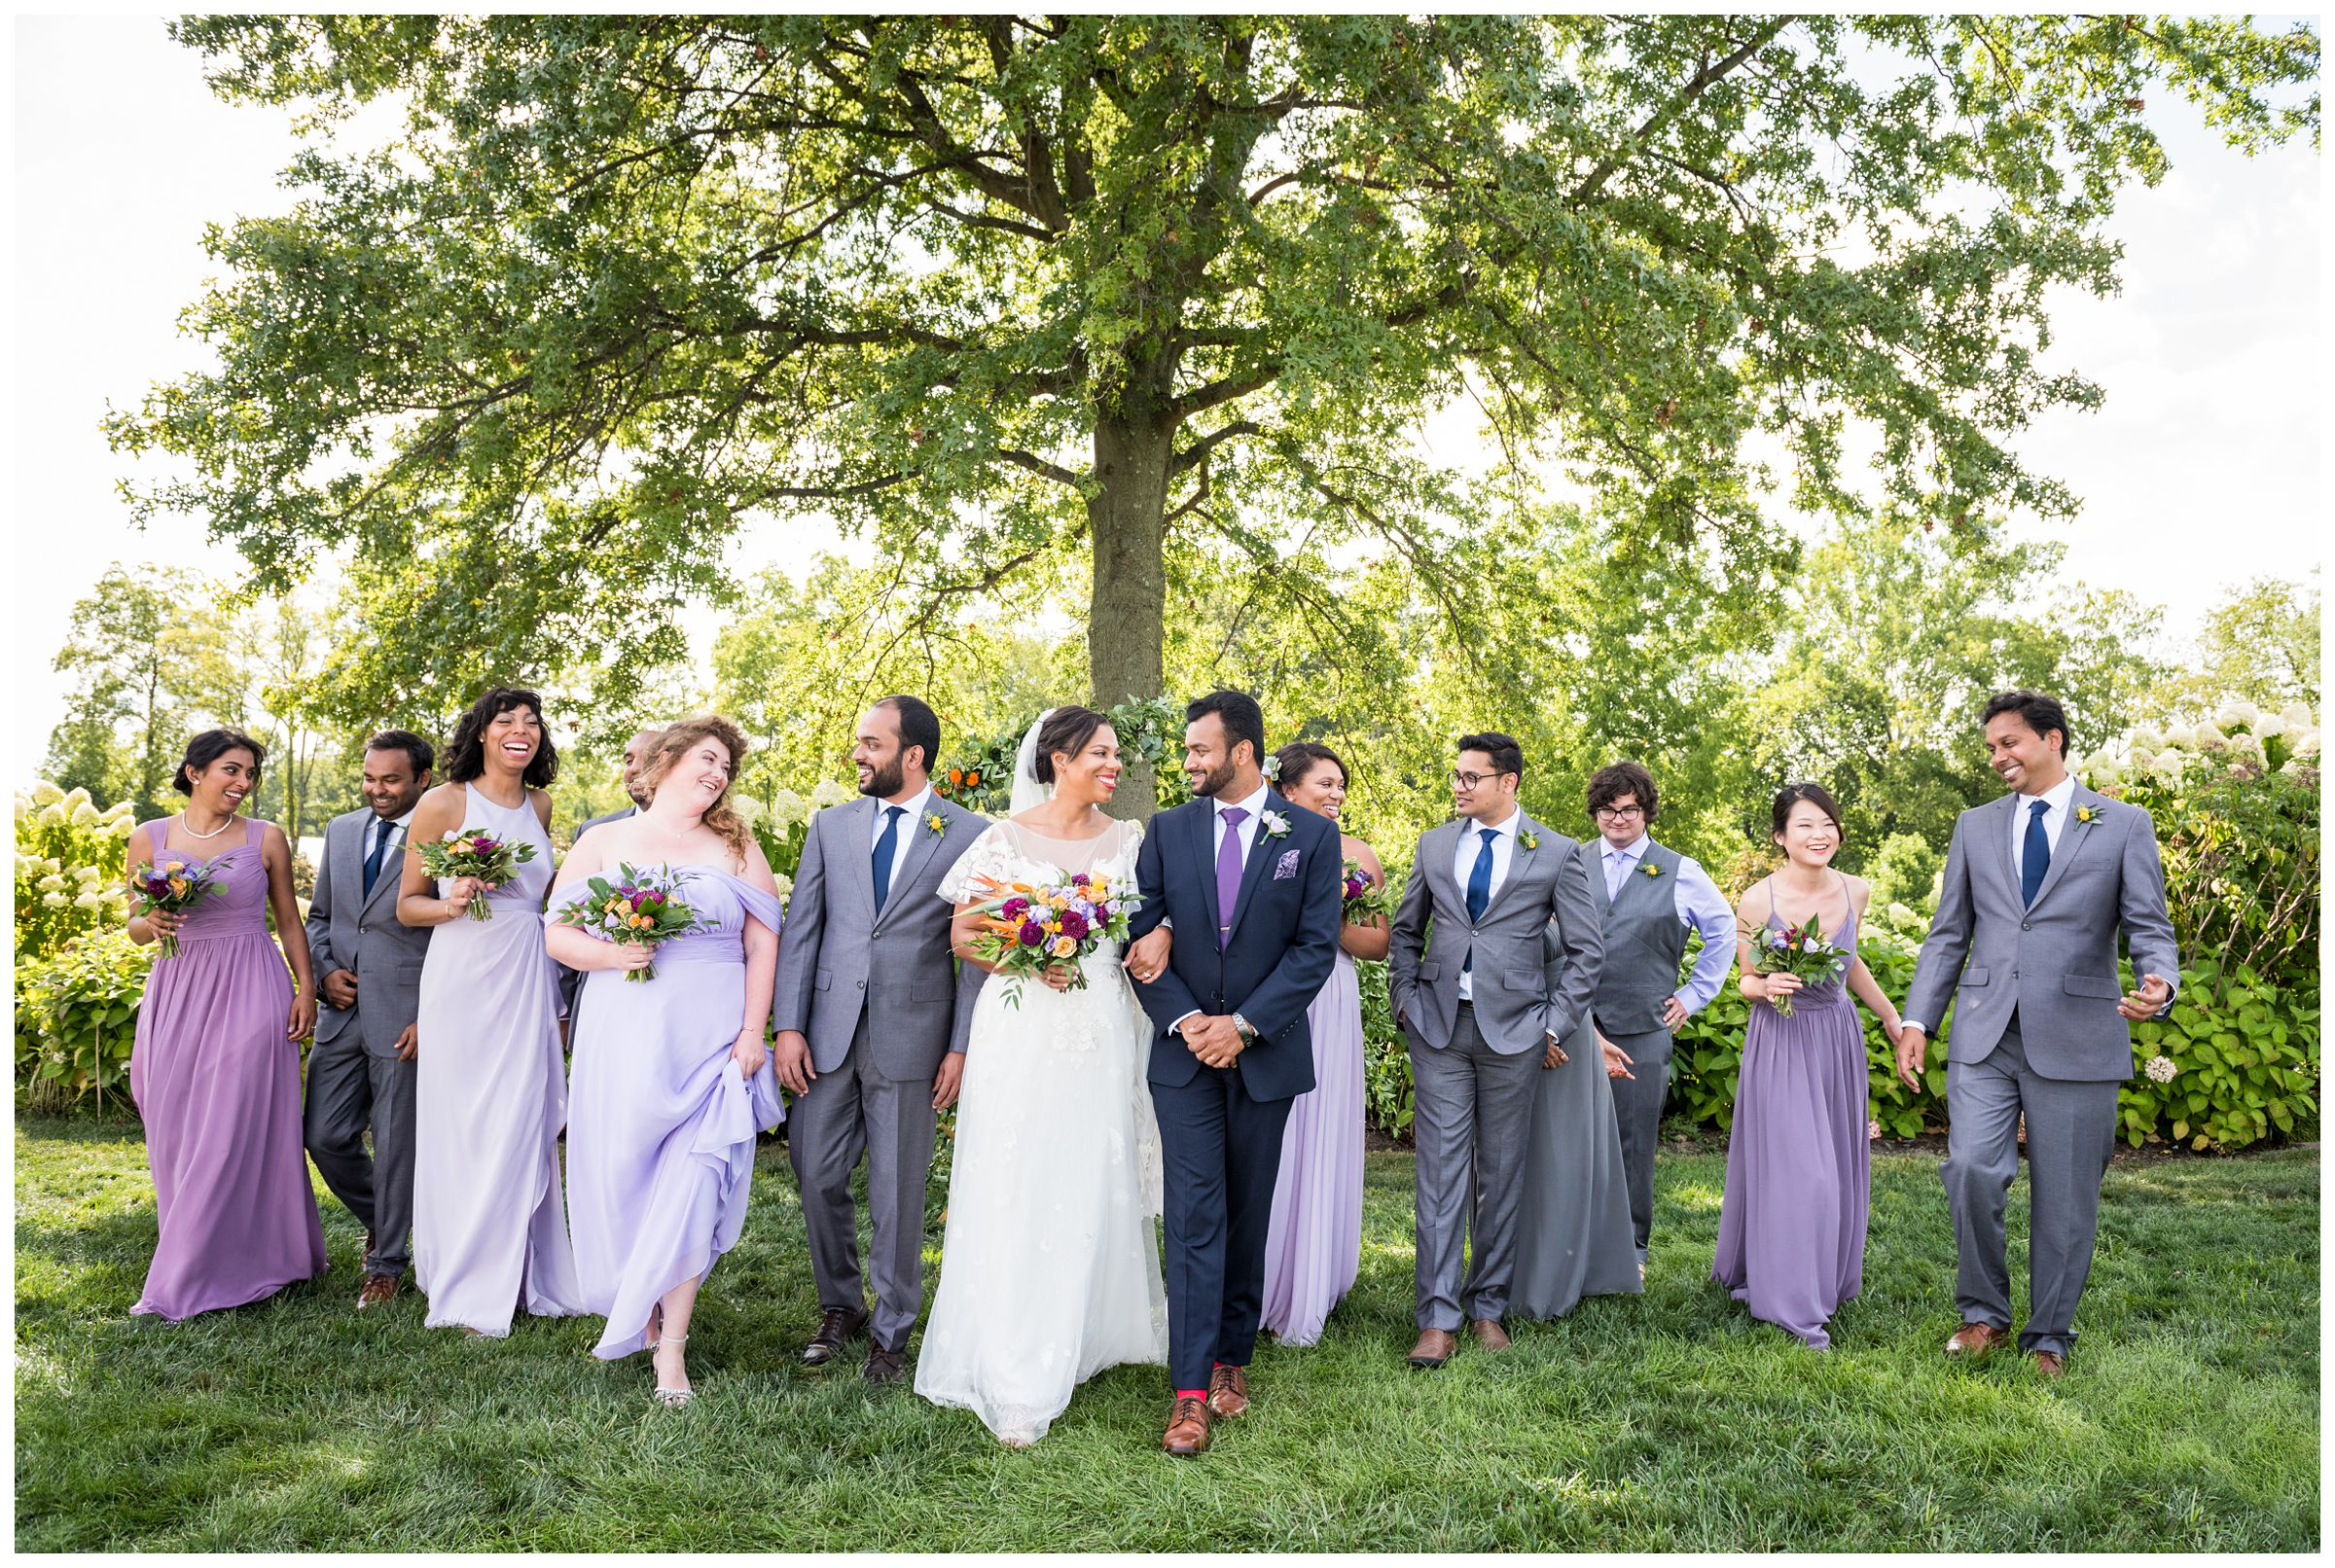 light purple, blue and gold wedding party with diverse ethnicities